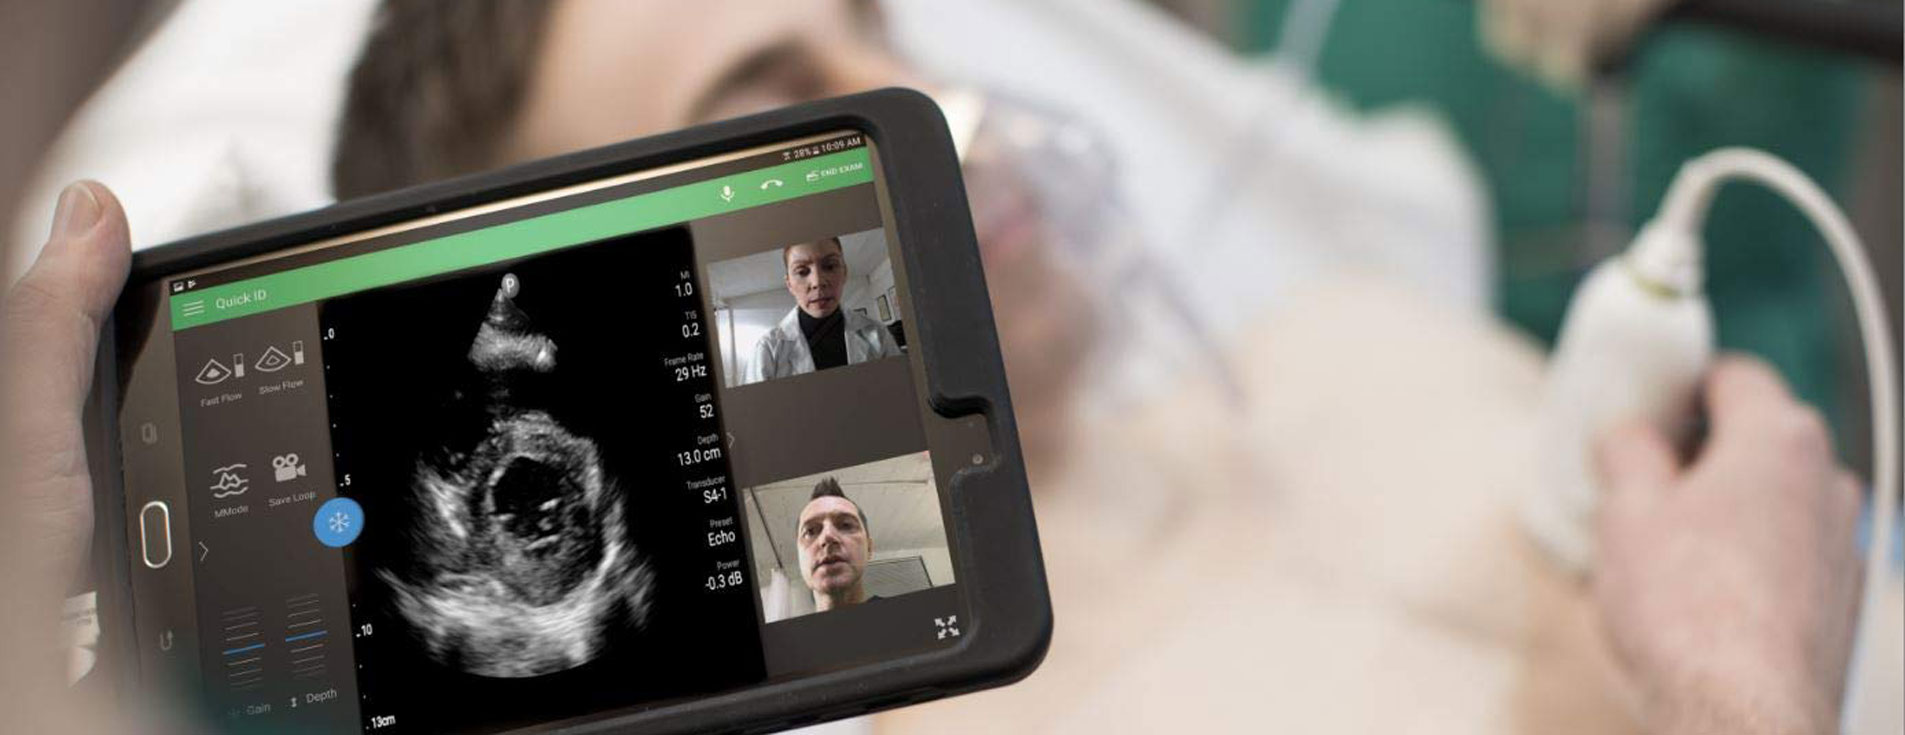 LUMIFY SMART PORTABLE ULTRASOUND